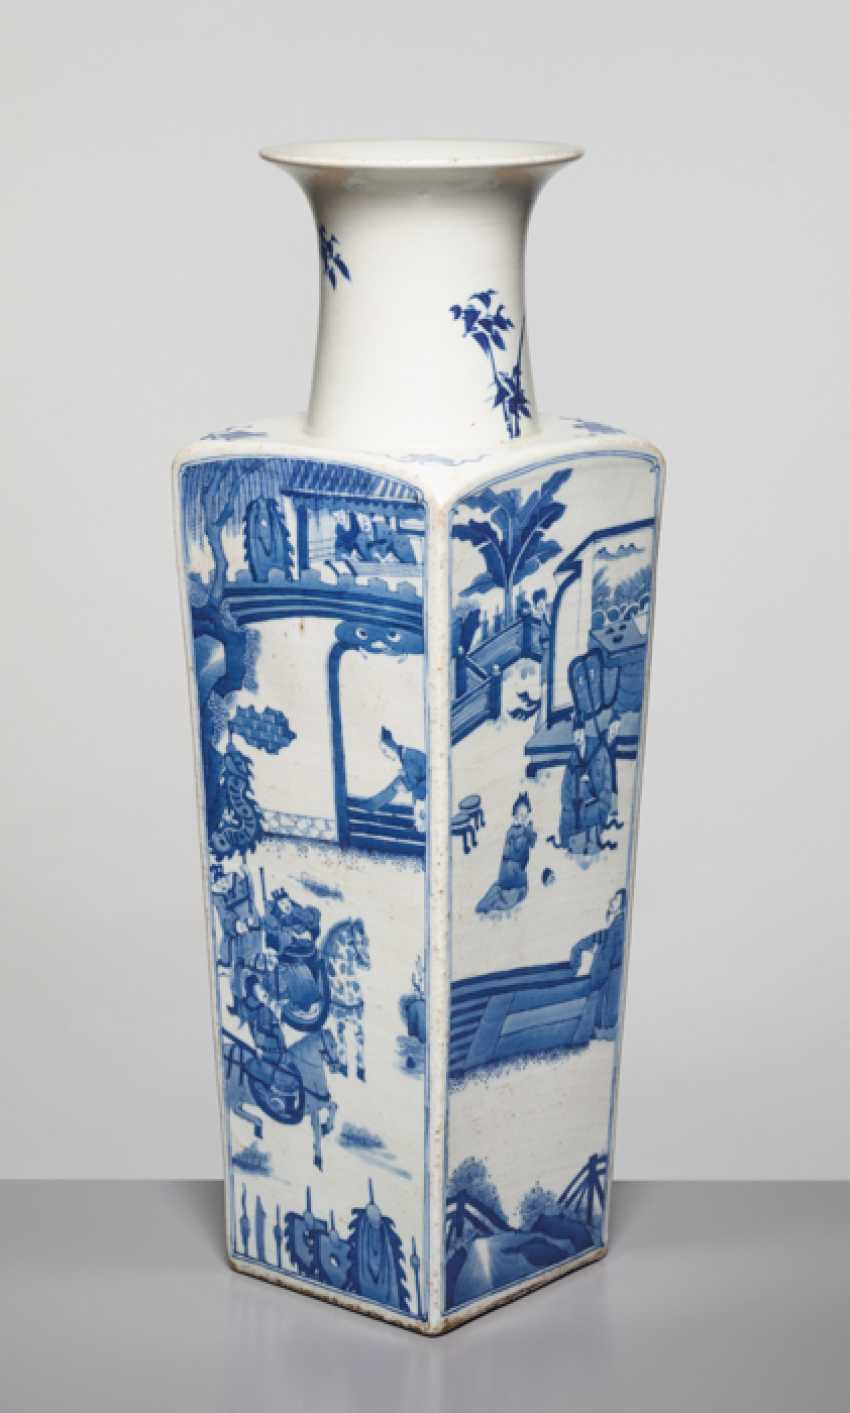 A BLUE AND WHITE SQUARE VASE WITH GENRE SCENES, KANGXI - photo 1